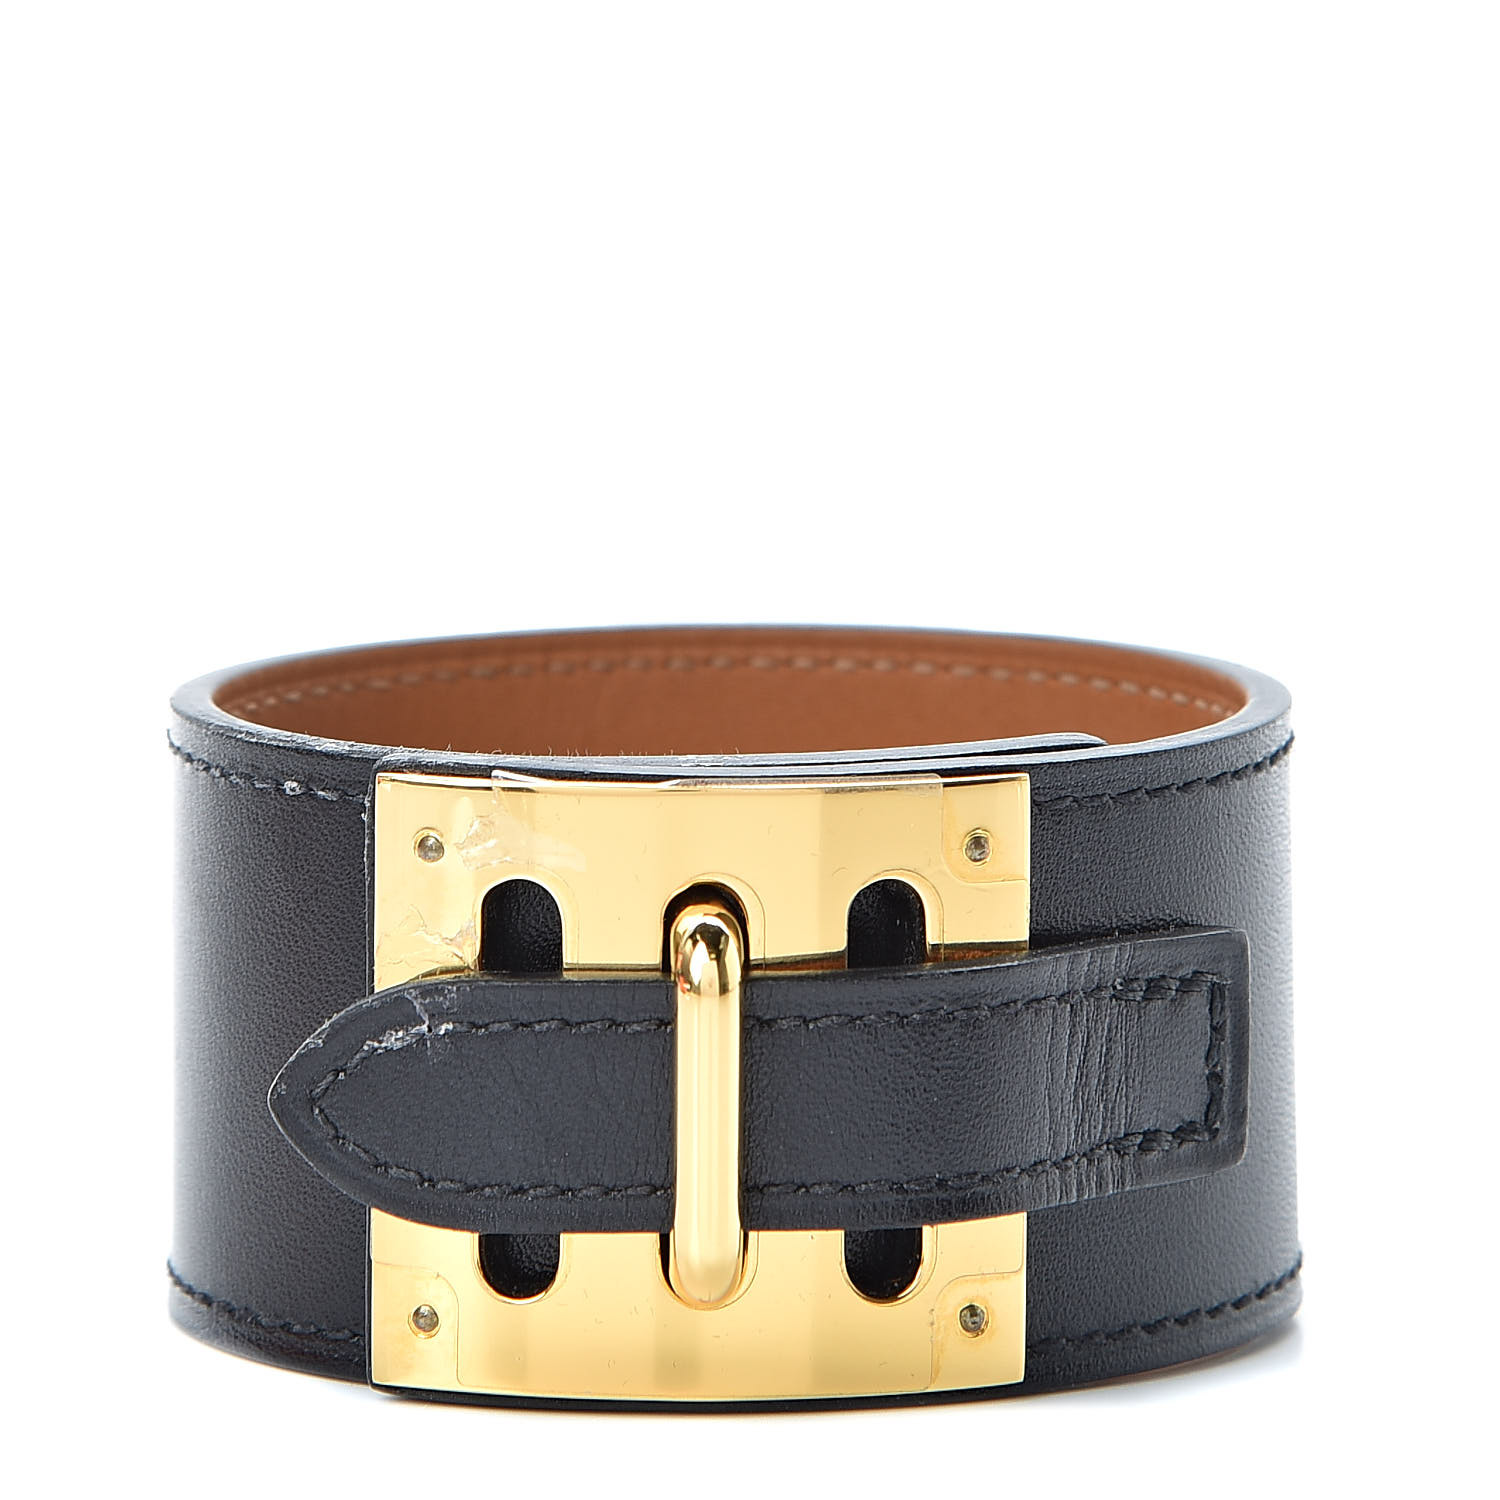 Hermes Box Intense Bracelet M Black 504057